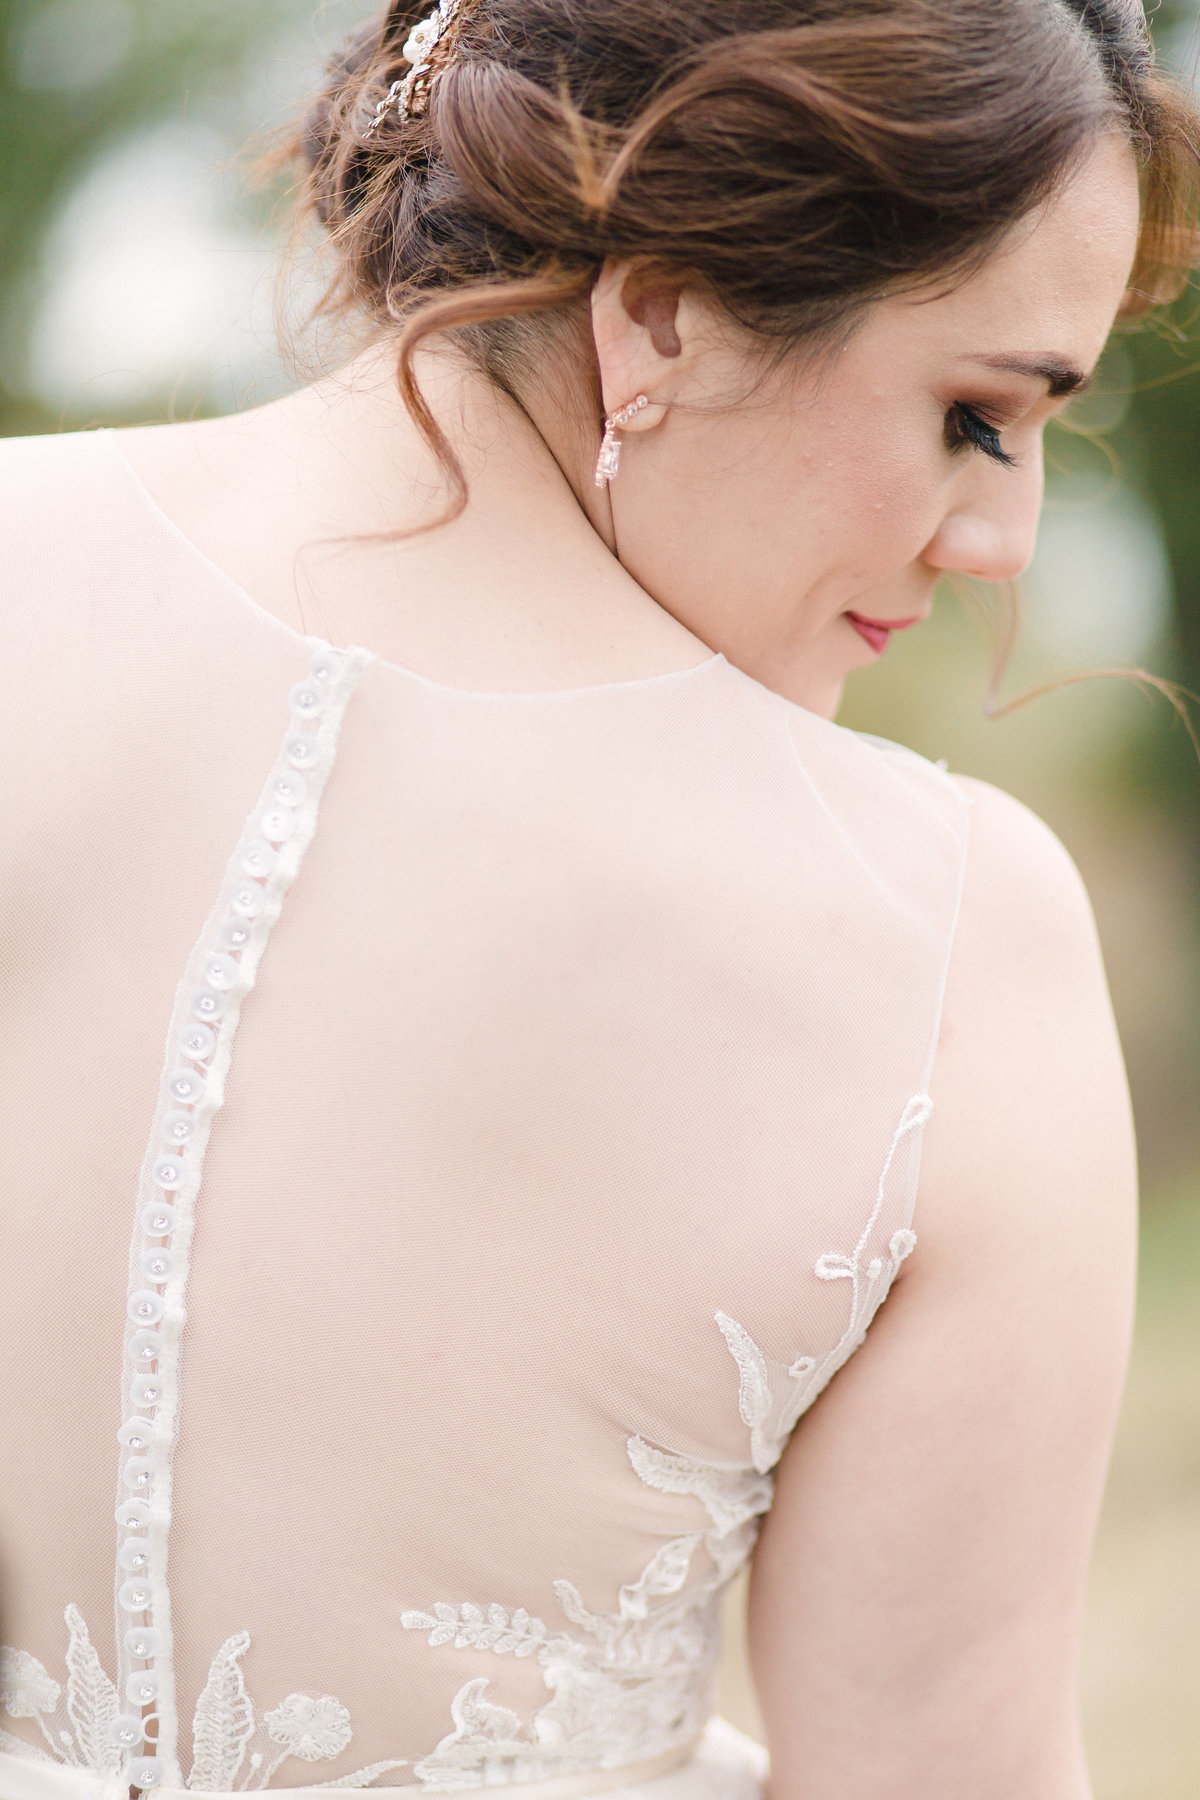 The-woodlands-bridal-session-alicia-yarrish-photography-38